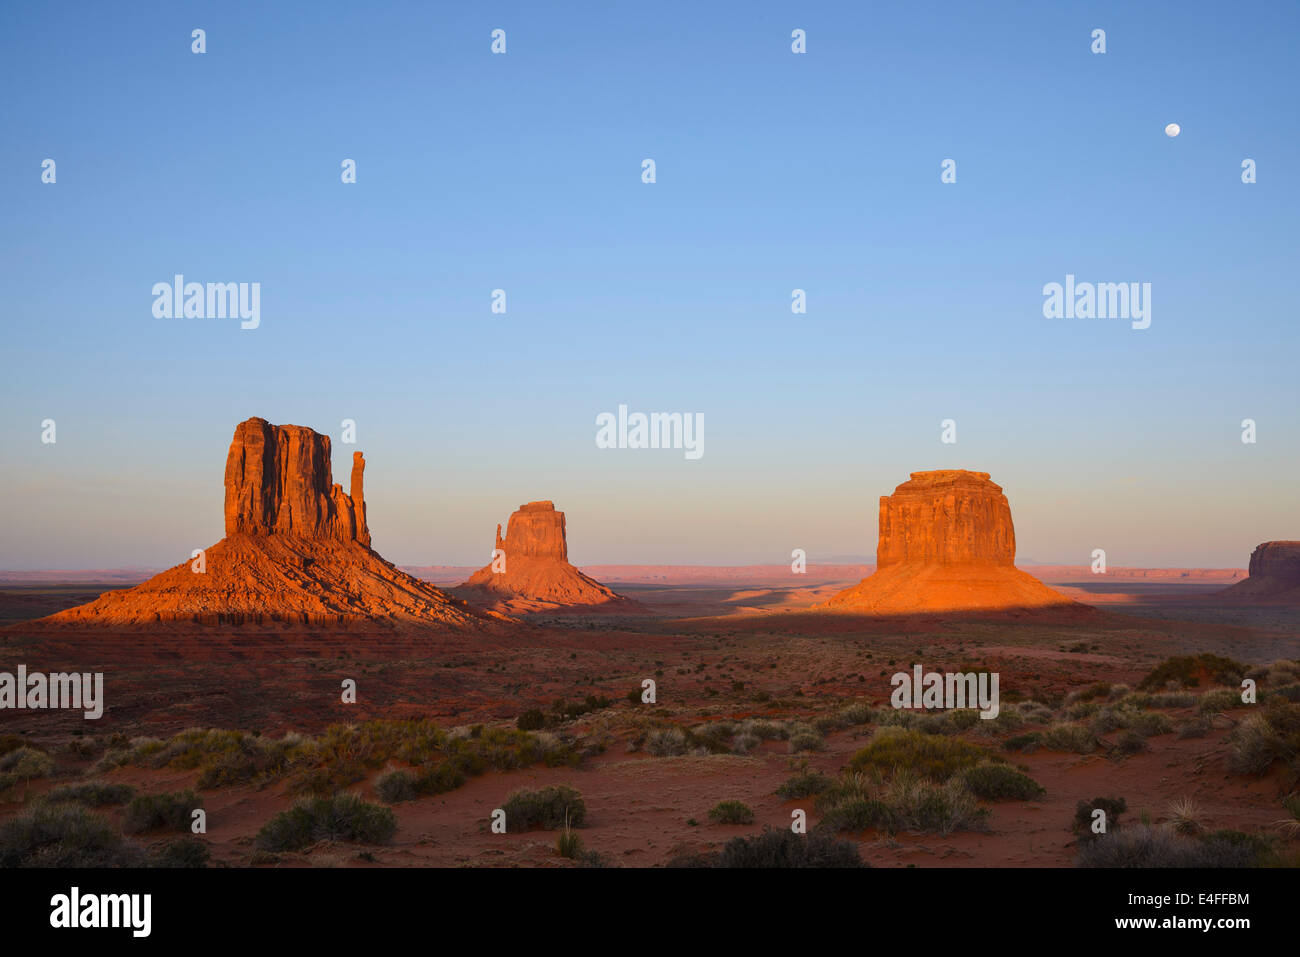 East and West Mitterns and Merrick Butte at sunset, Monument Valley, Arizona, USA - Stock Image